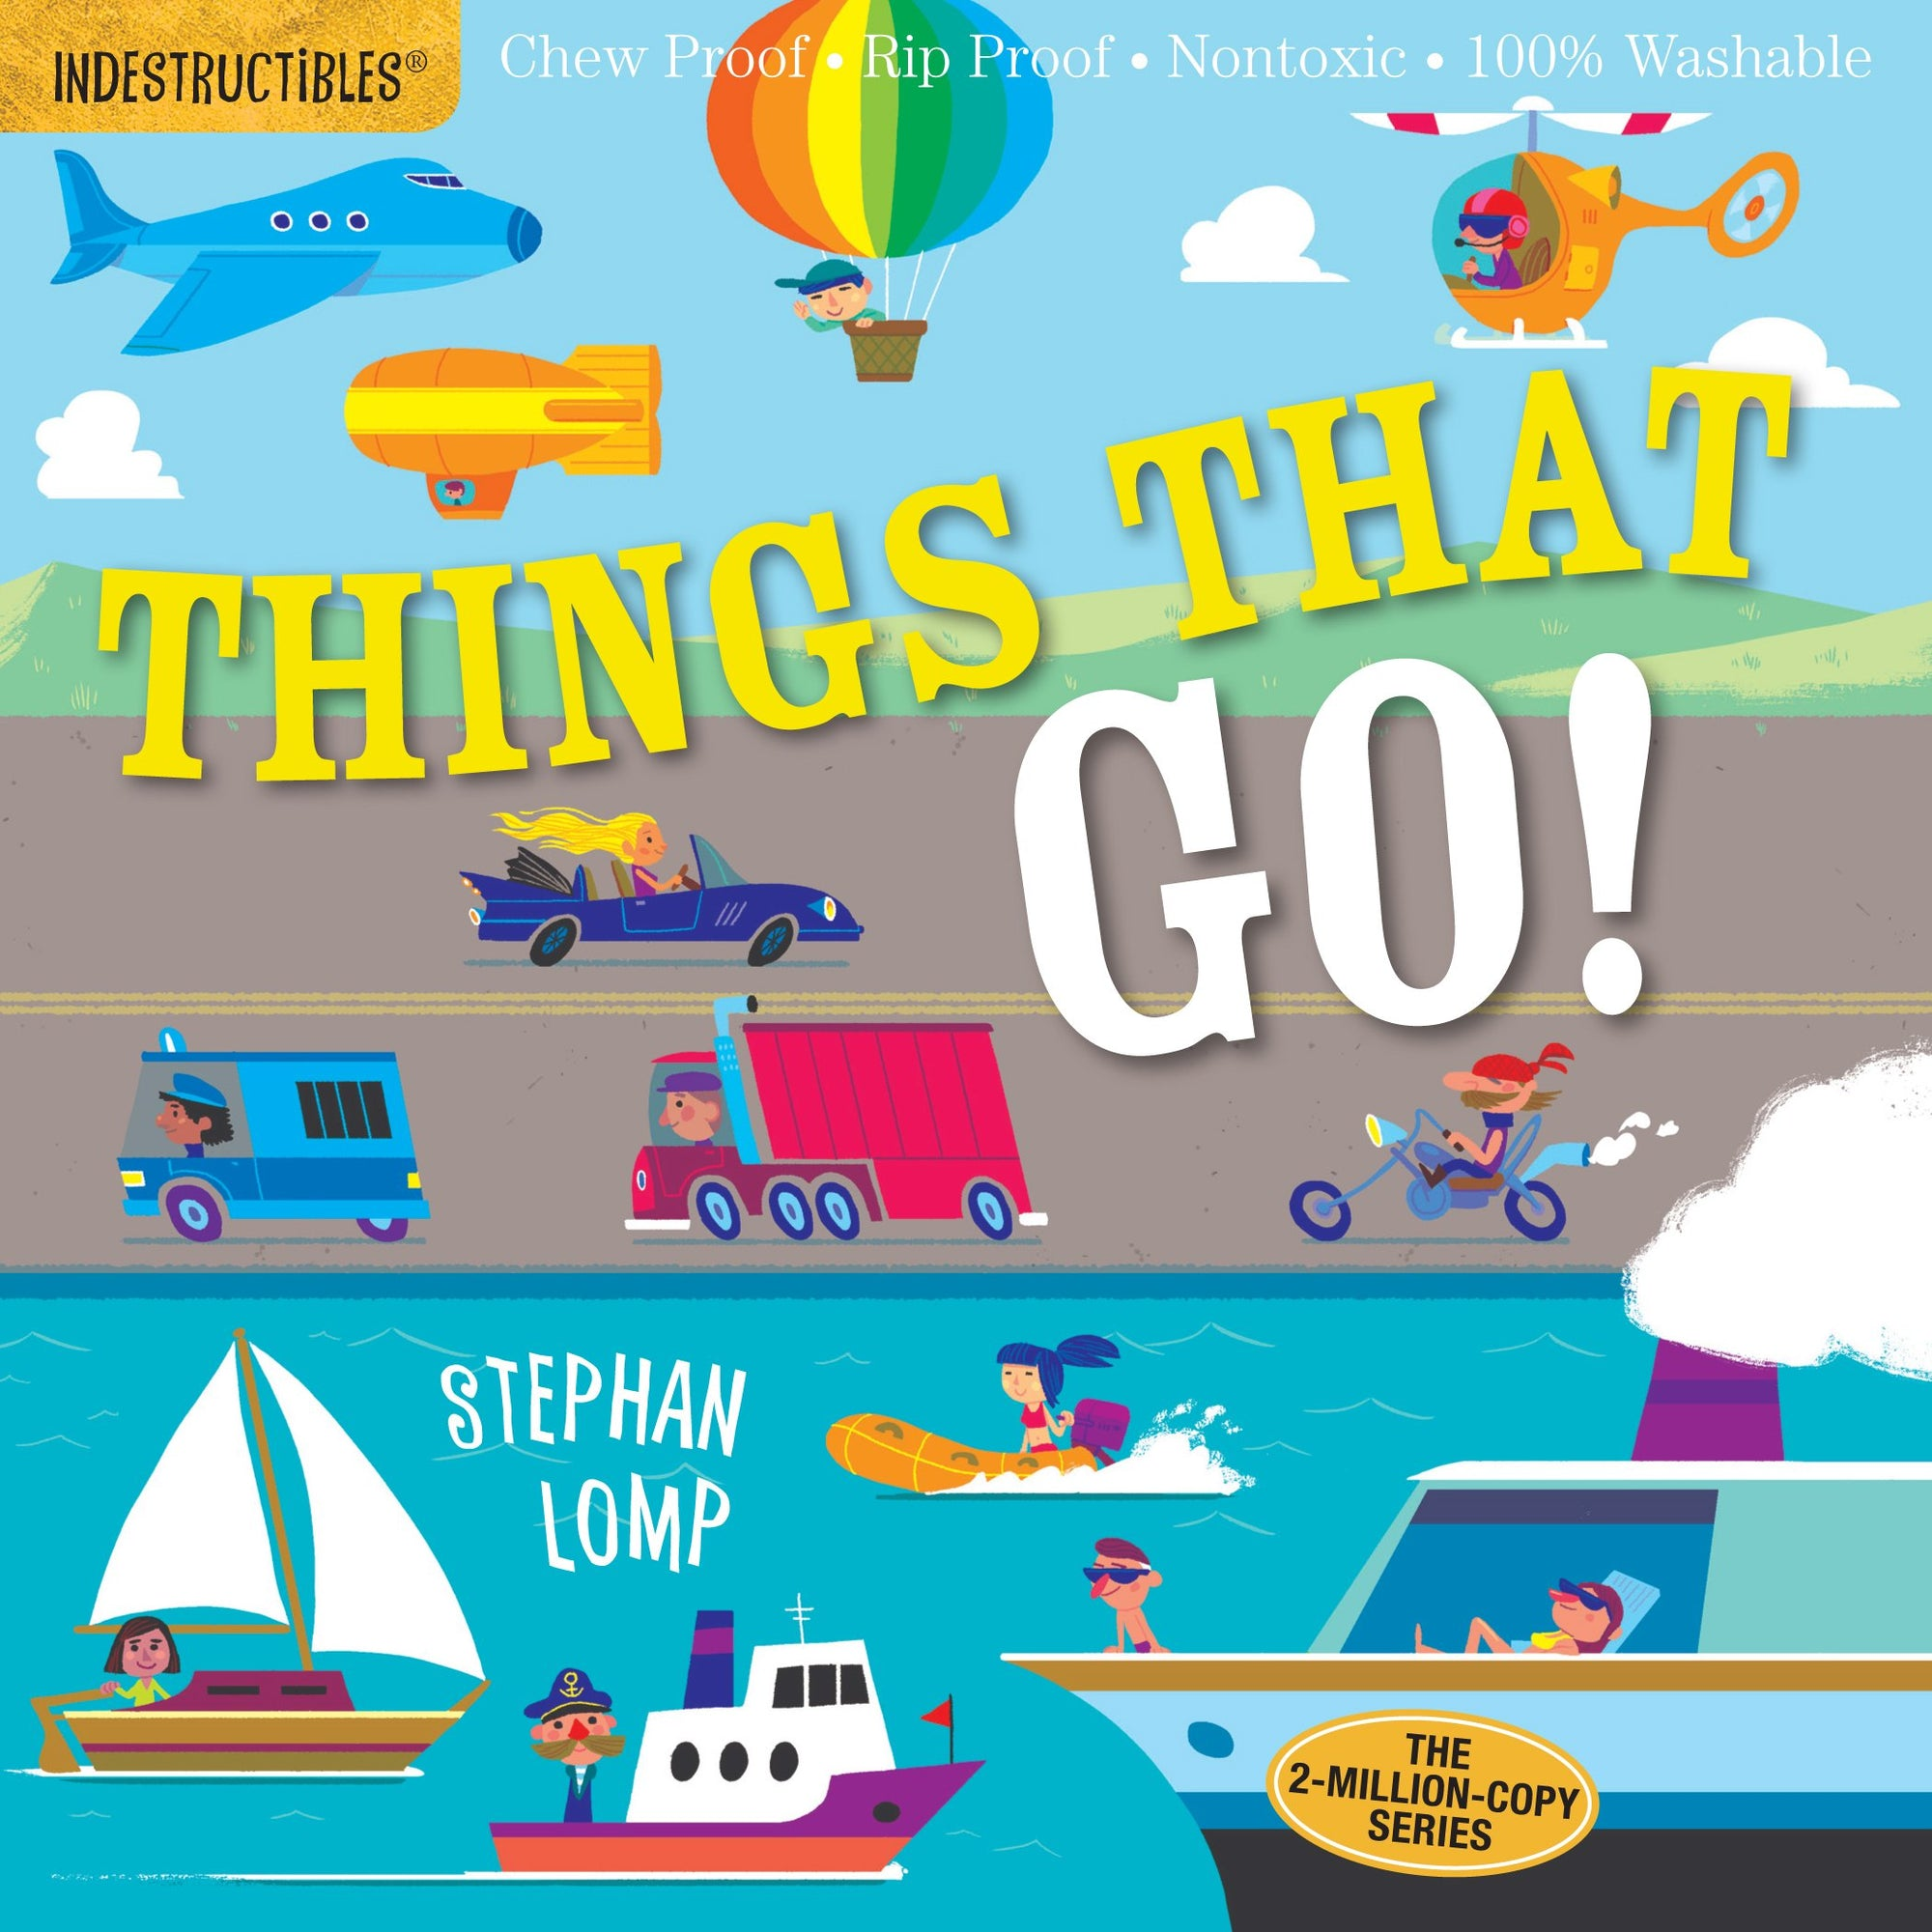 Indestructibles Books - Things That Go!